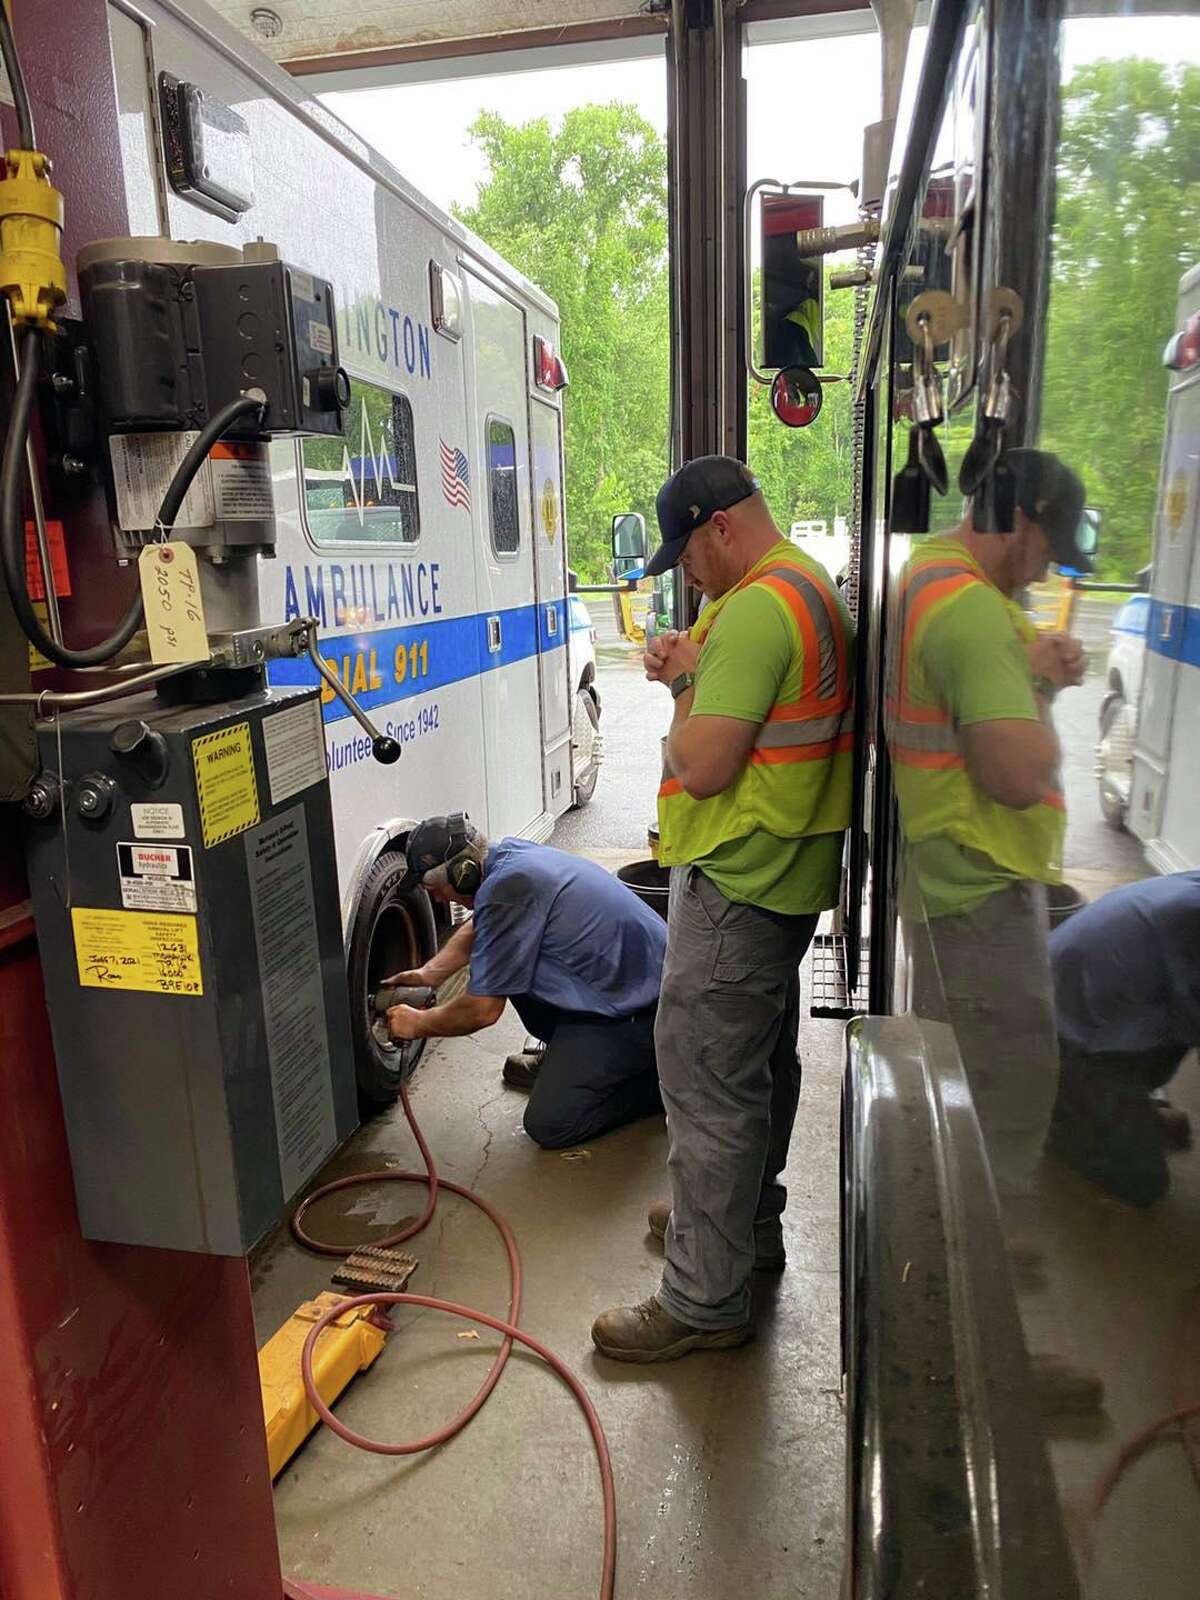 Repairs were needed on an ambulance after a tire blowout on Route 7 while transporting patients to Danbury Hospital following a crash on Route 202 in Washington, Conn., on Sunday, Aug. 22, 2021.